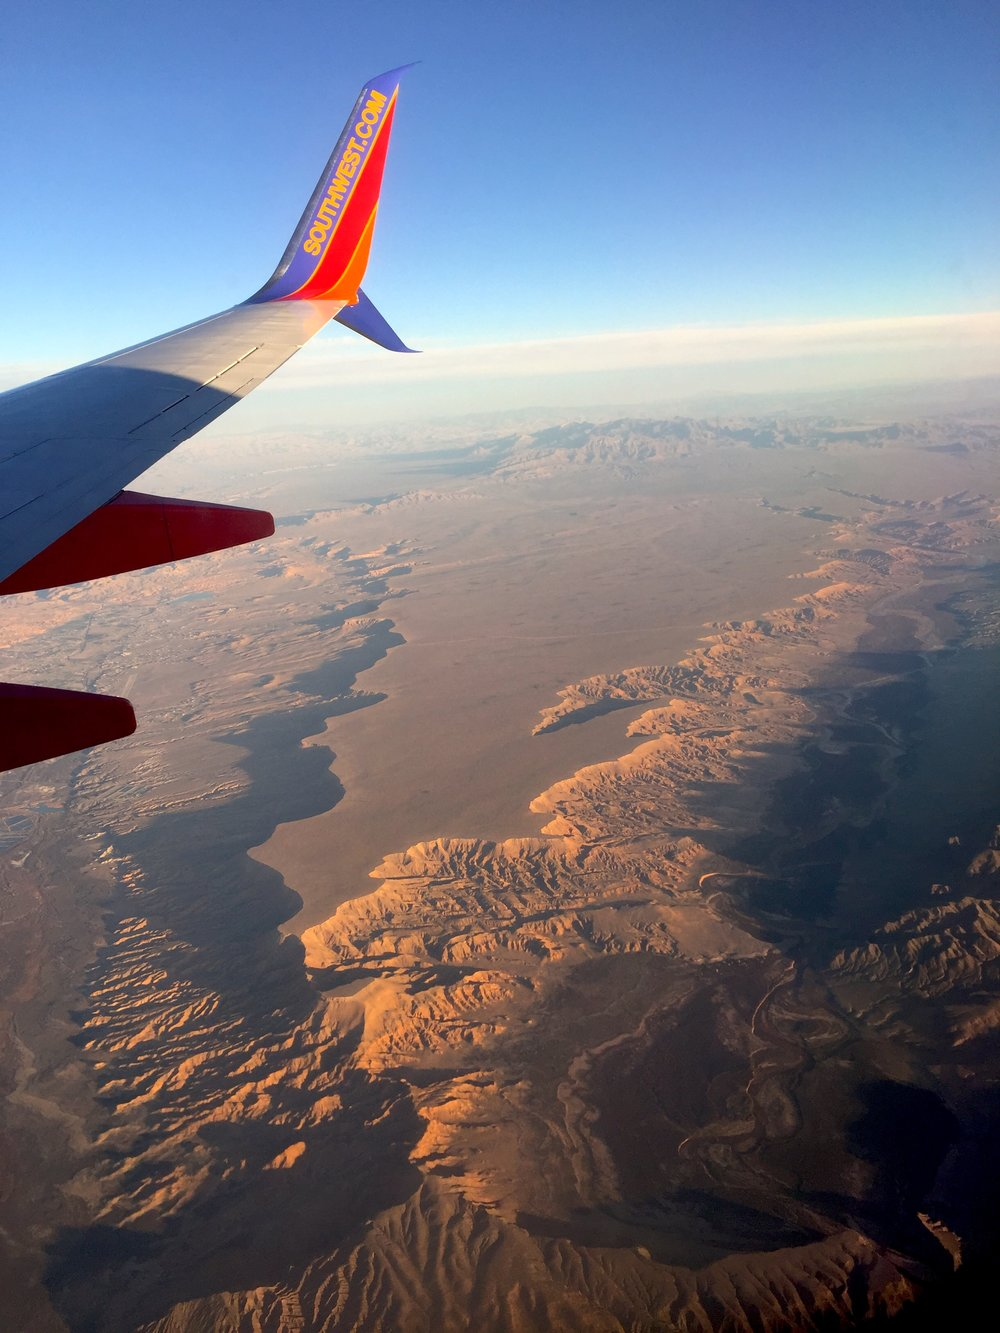 Flying over Las Vegas, NV